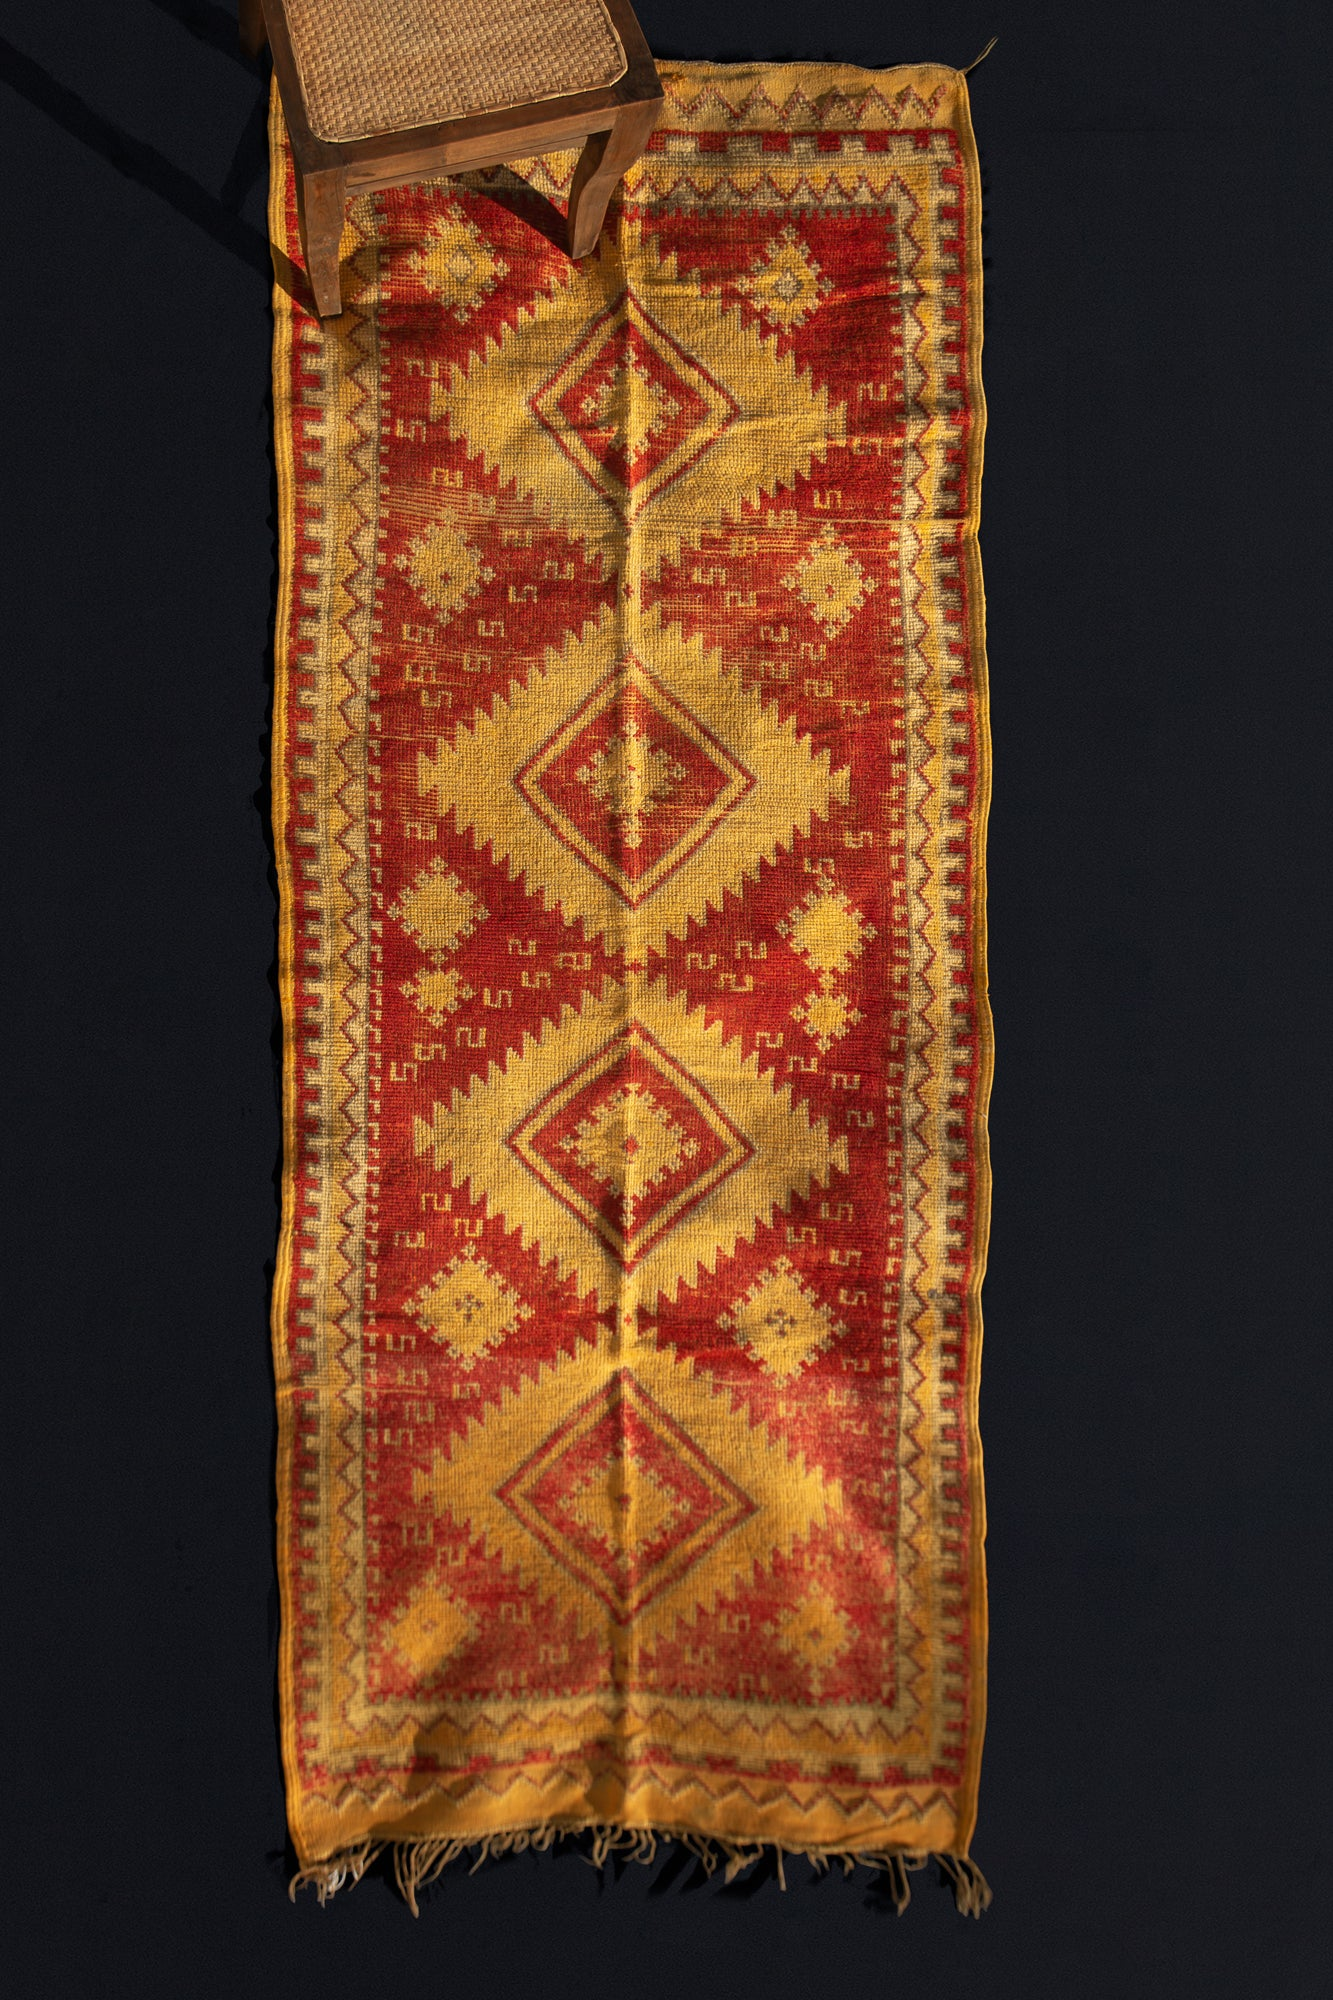 Central Atlas Runner with Saw-tooth Diamond Central Motif